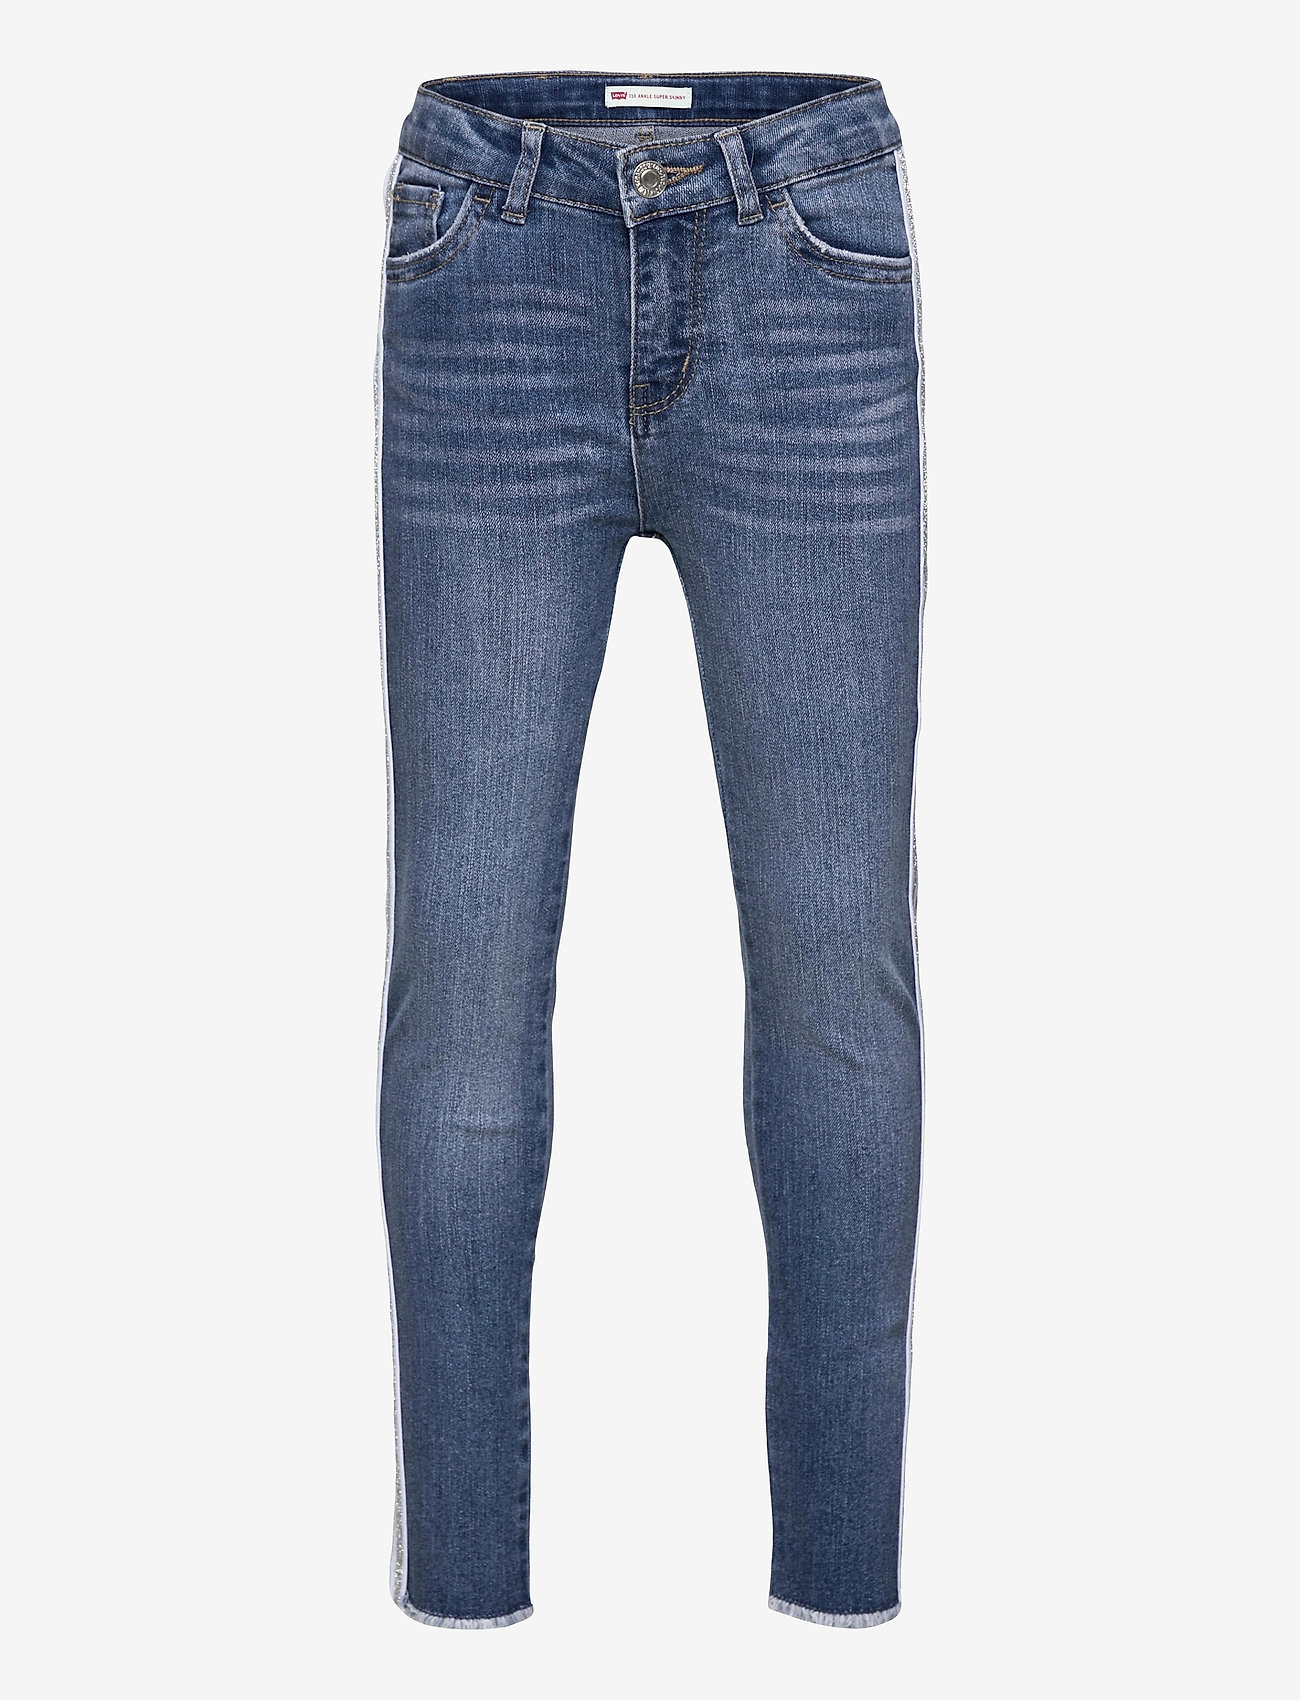 Levi's - 710 SKINNY ANKLE JEAN - jeans - no diggity - 0